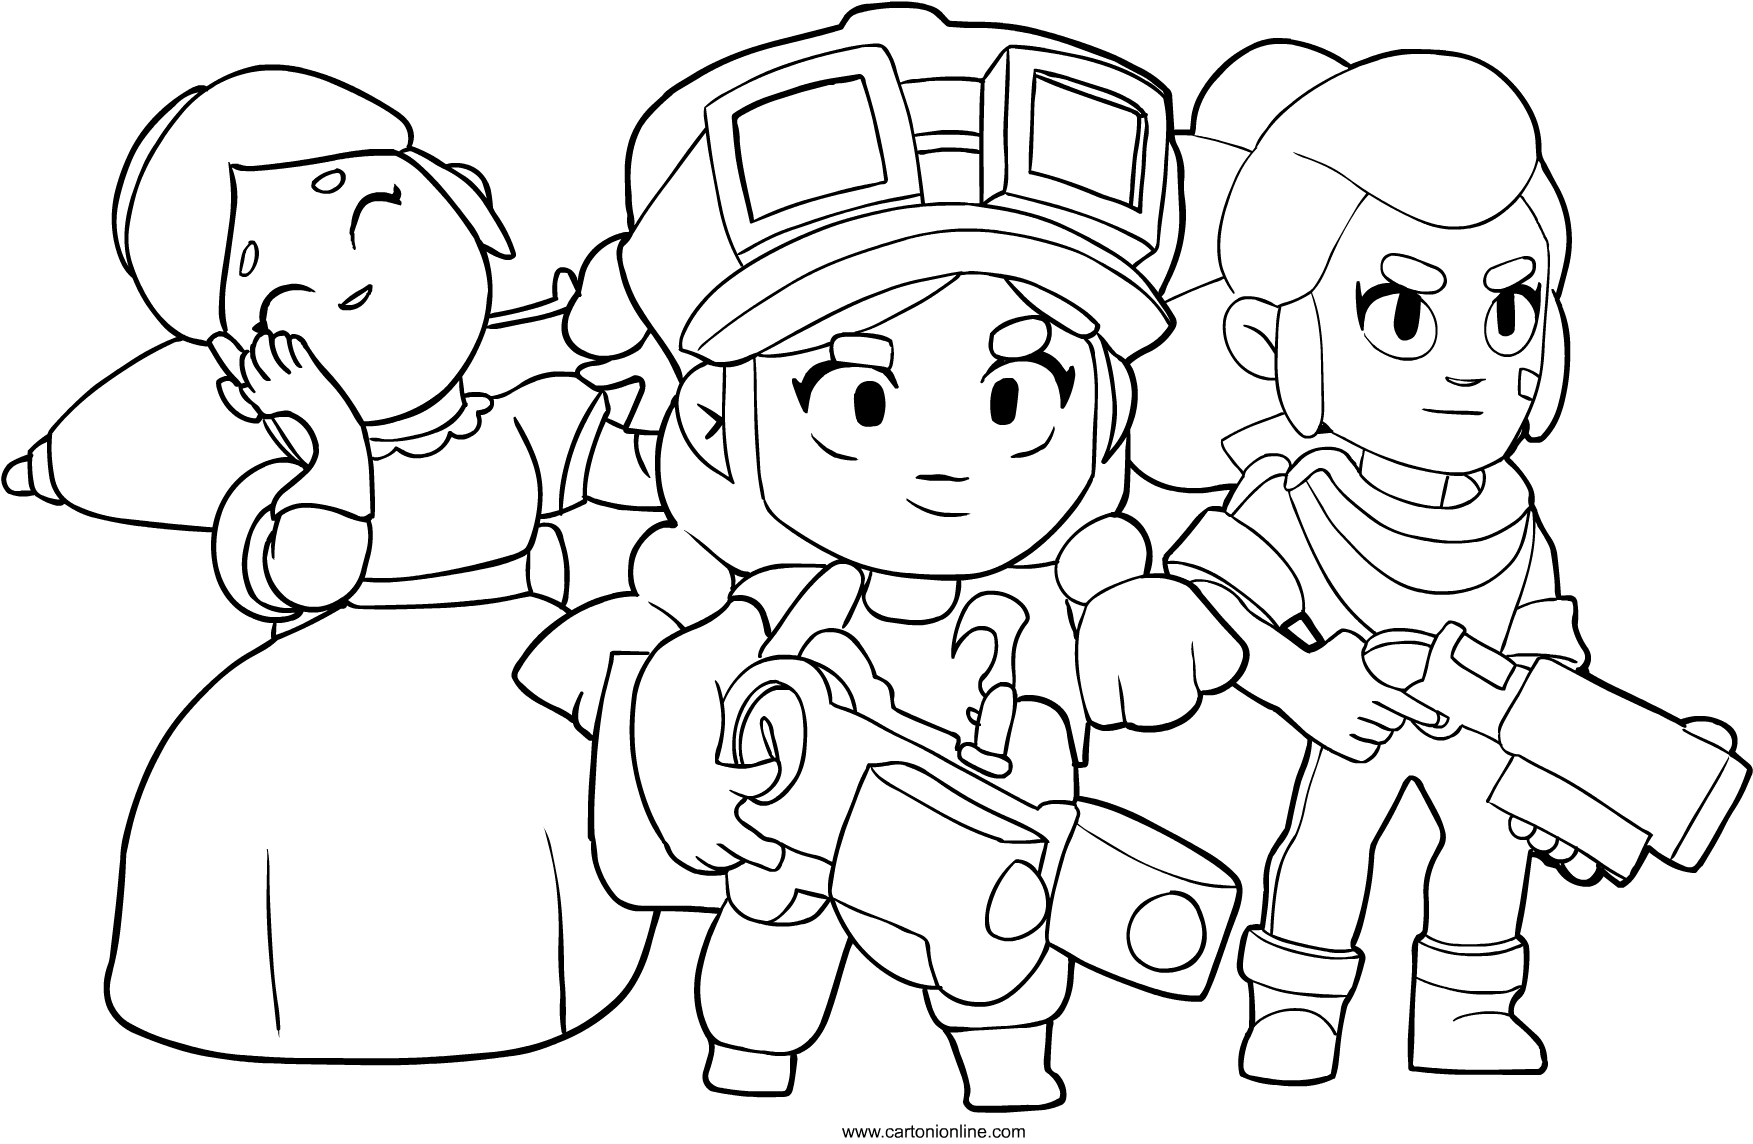 characters from Brawl Stars coloring page